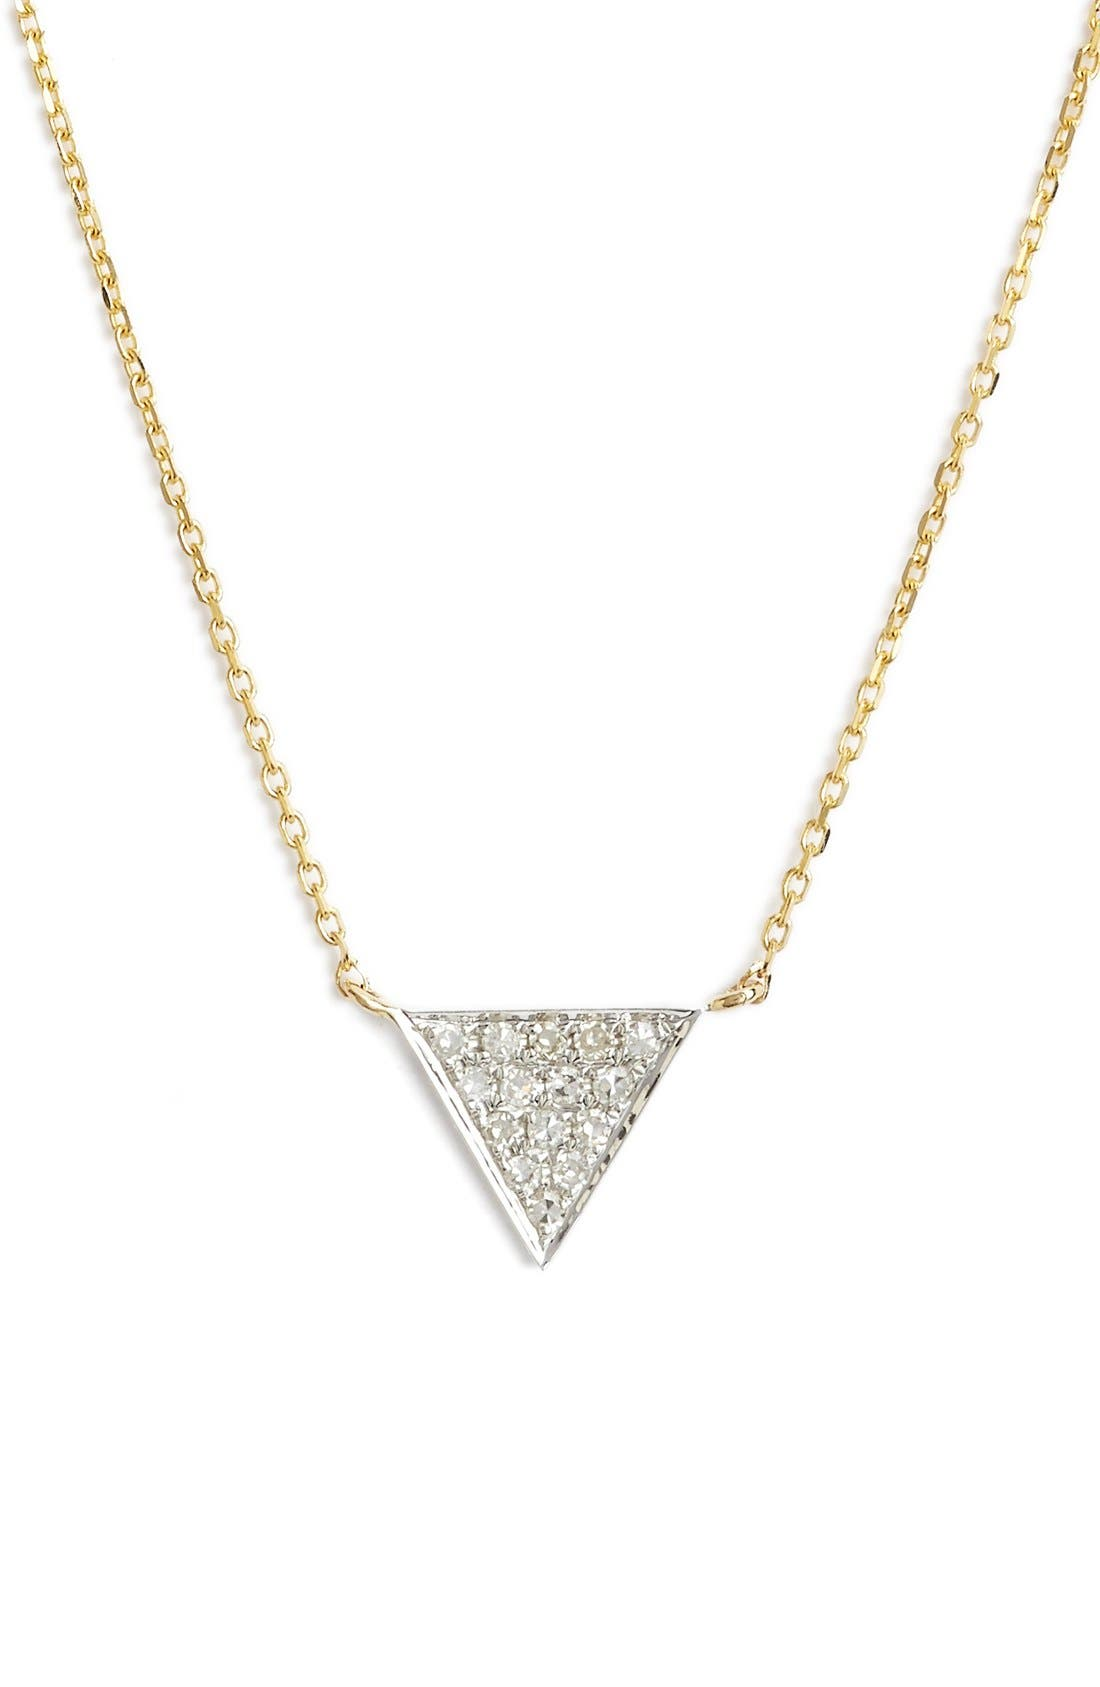 DANA REBECCA DESIGNS, 'Emily Sarah' Diamond Triangle Pendant Necklace, Main thumbnail 1, color, YELLOW GOLD